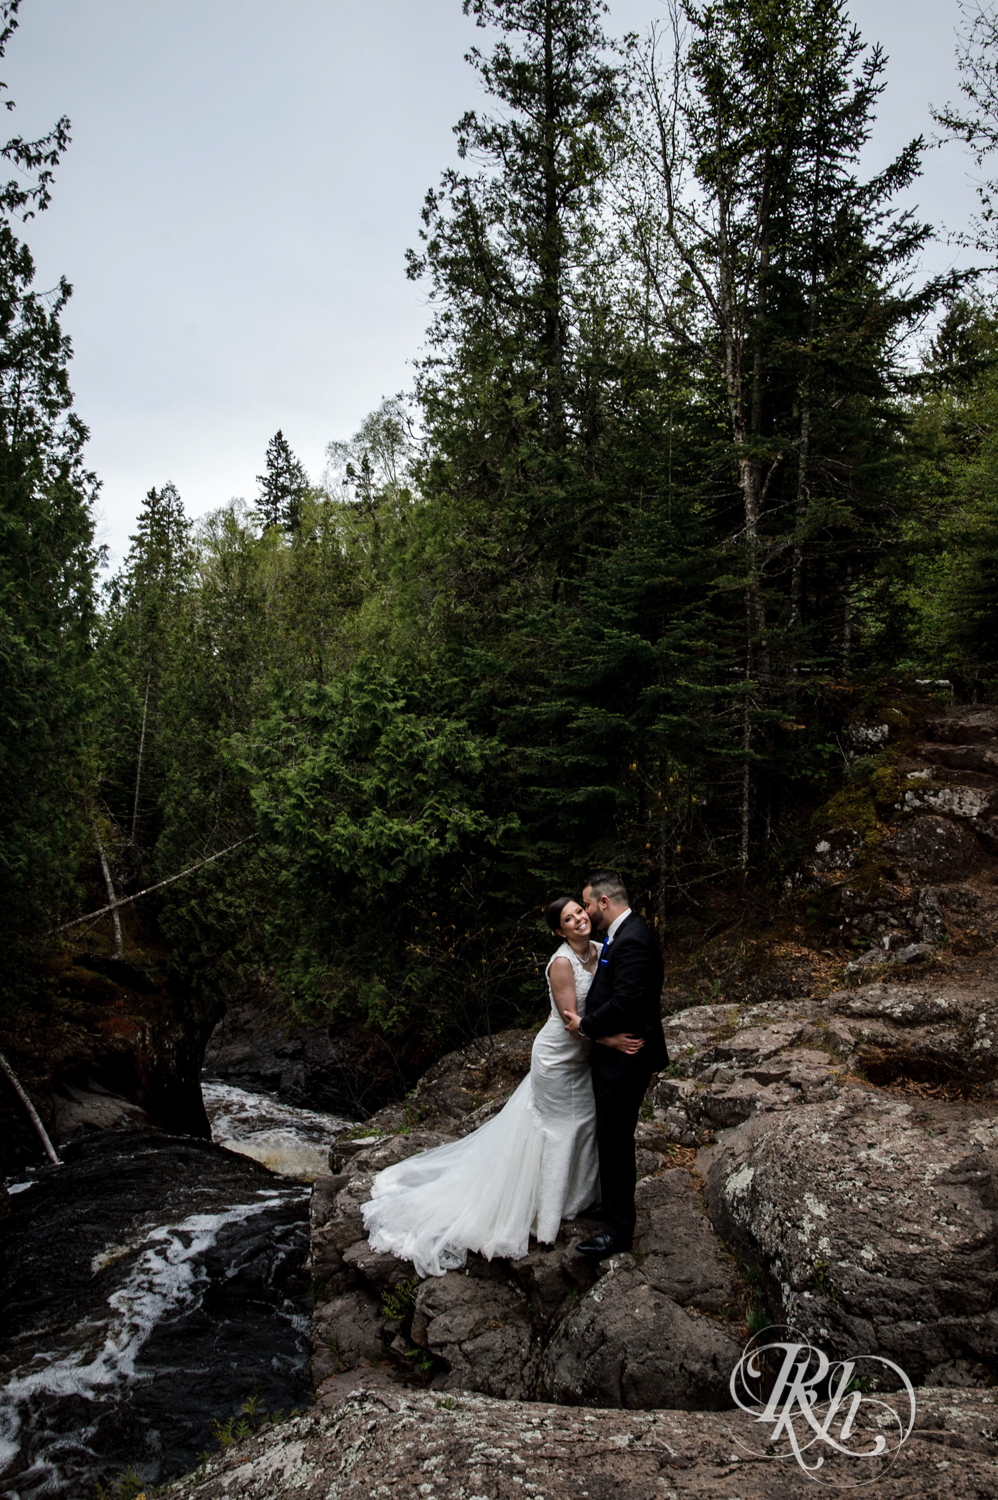 Minnesota Wedding Photography - RKH Images - Best of 2018 (12 of 51).jpg